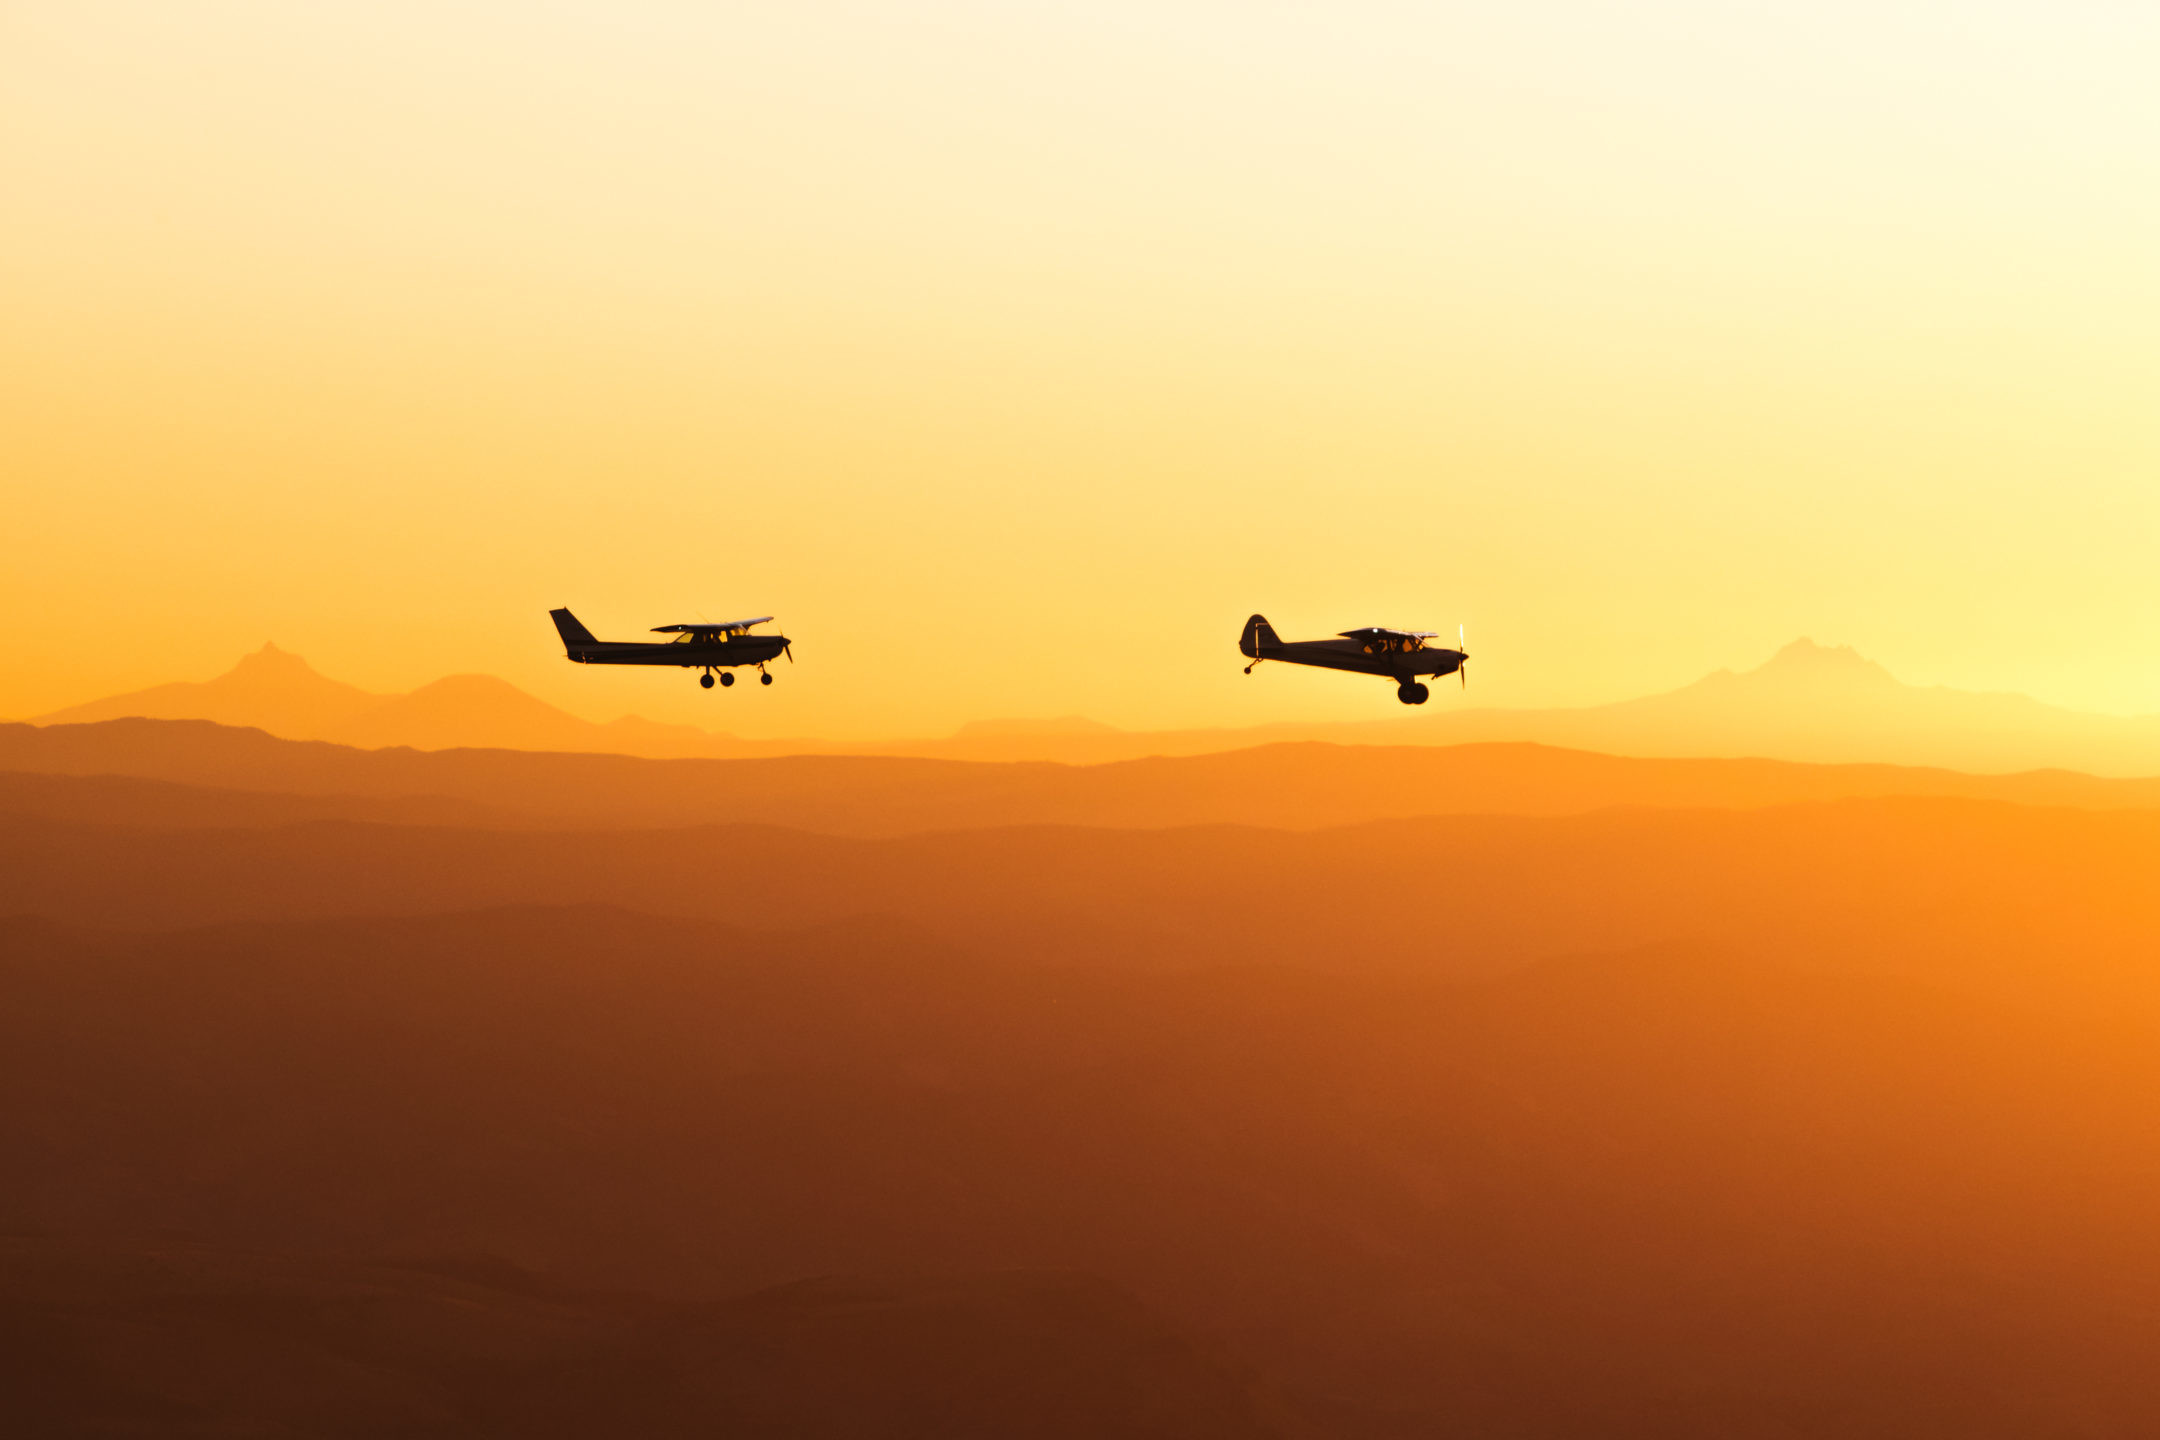 Aviation Photography of two airplanes flying over mountains in Oregon during Sunset